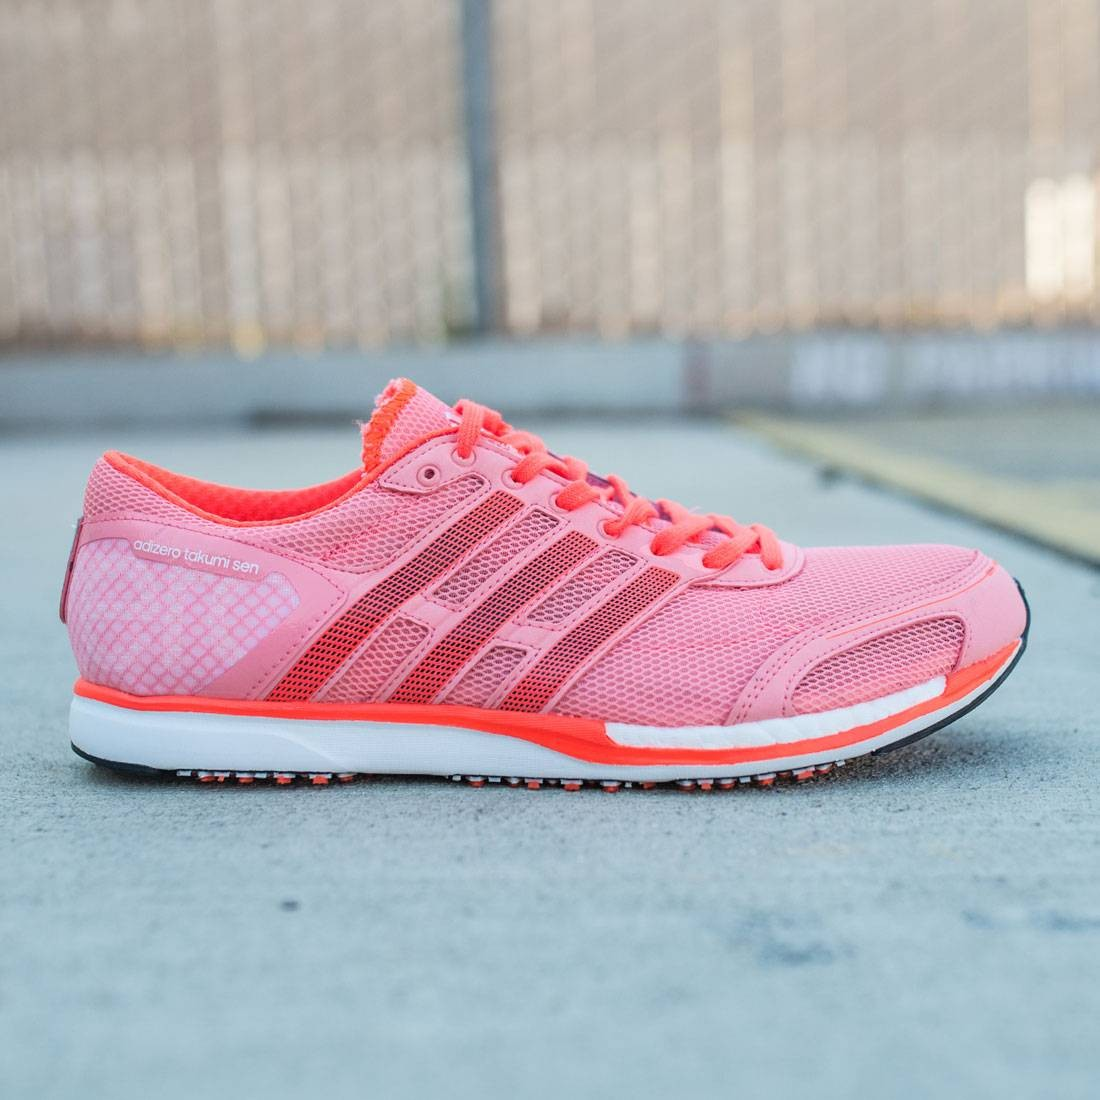 Adidas Men Adizero Takumi Sen 3 (pink ray pink core black solar red)